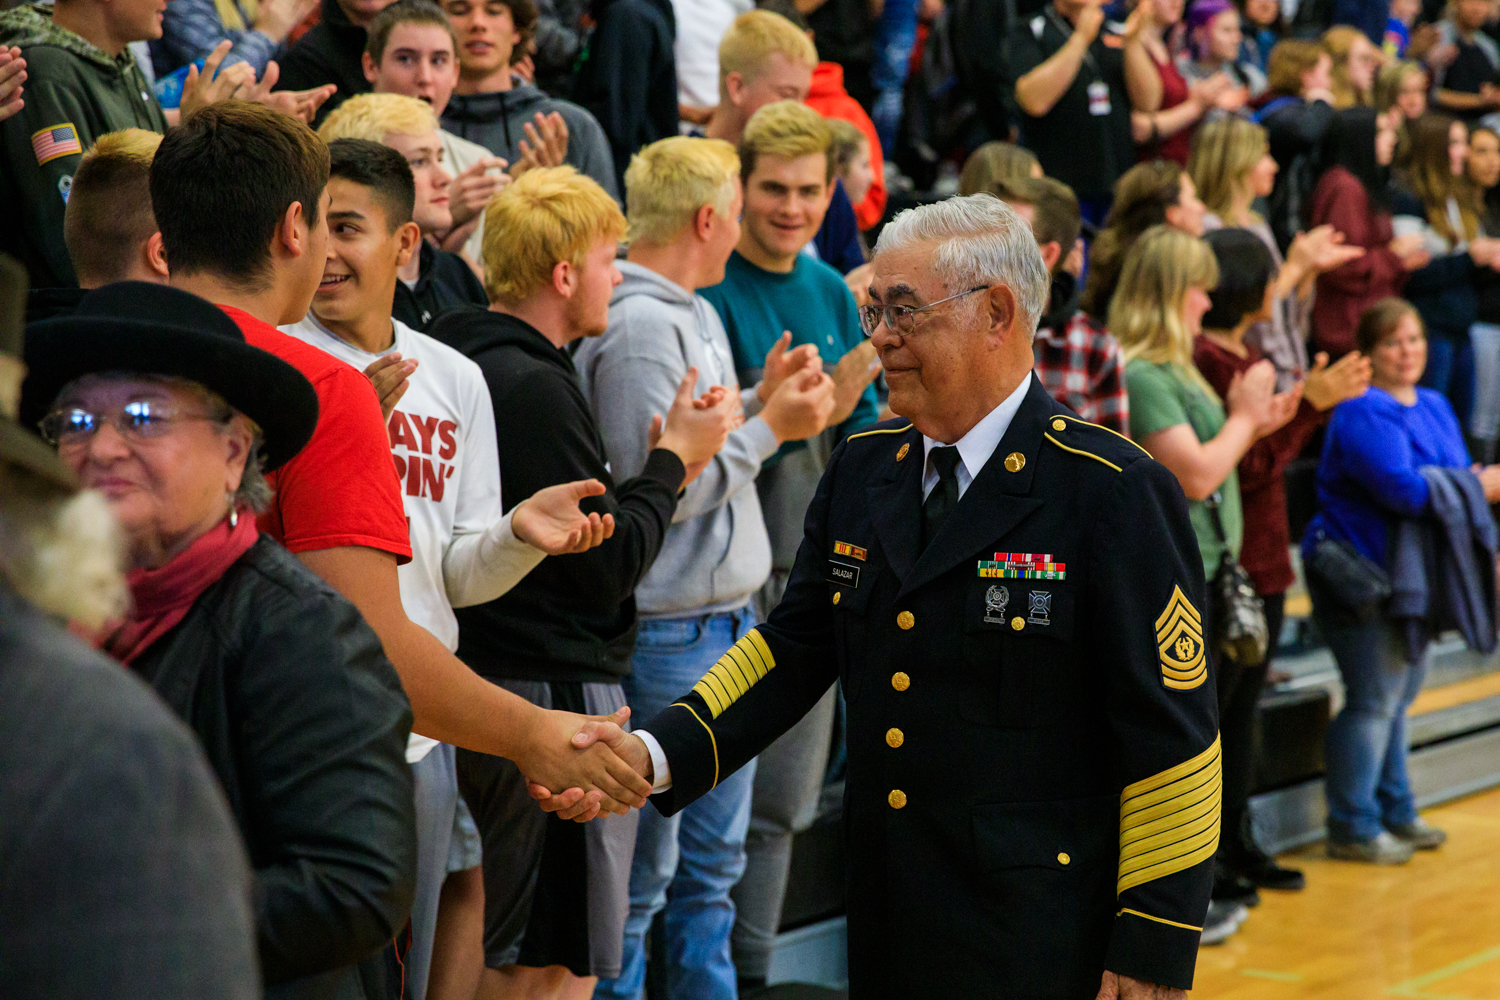 A veteran shakes hands with students of MHS